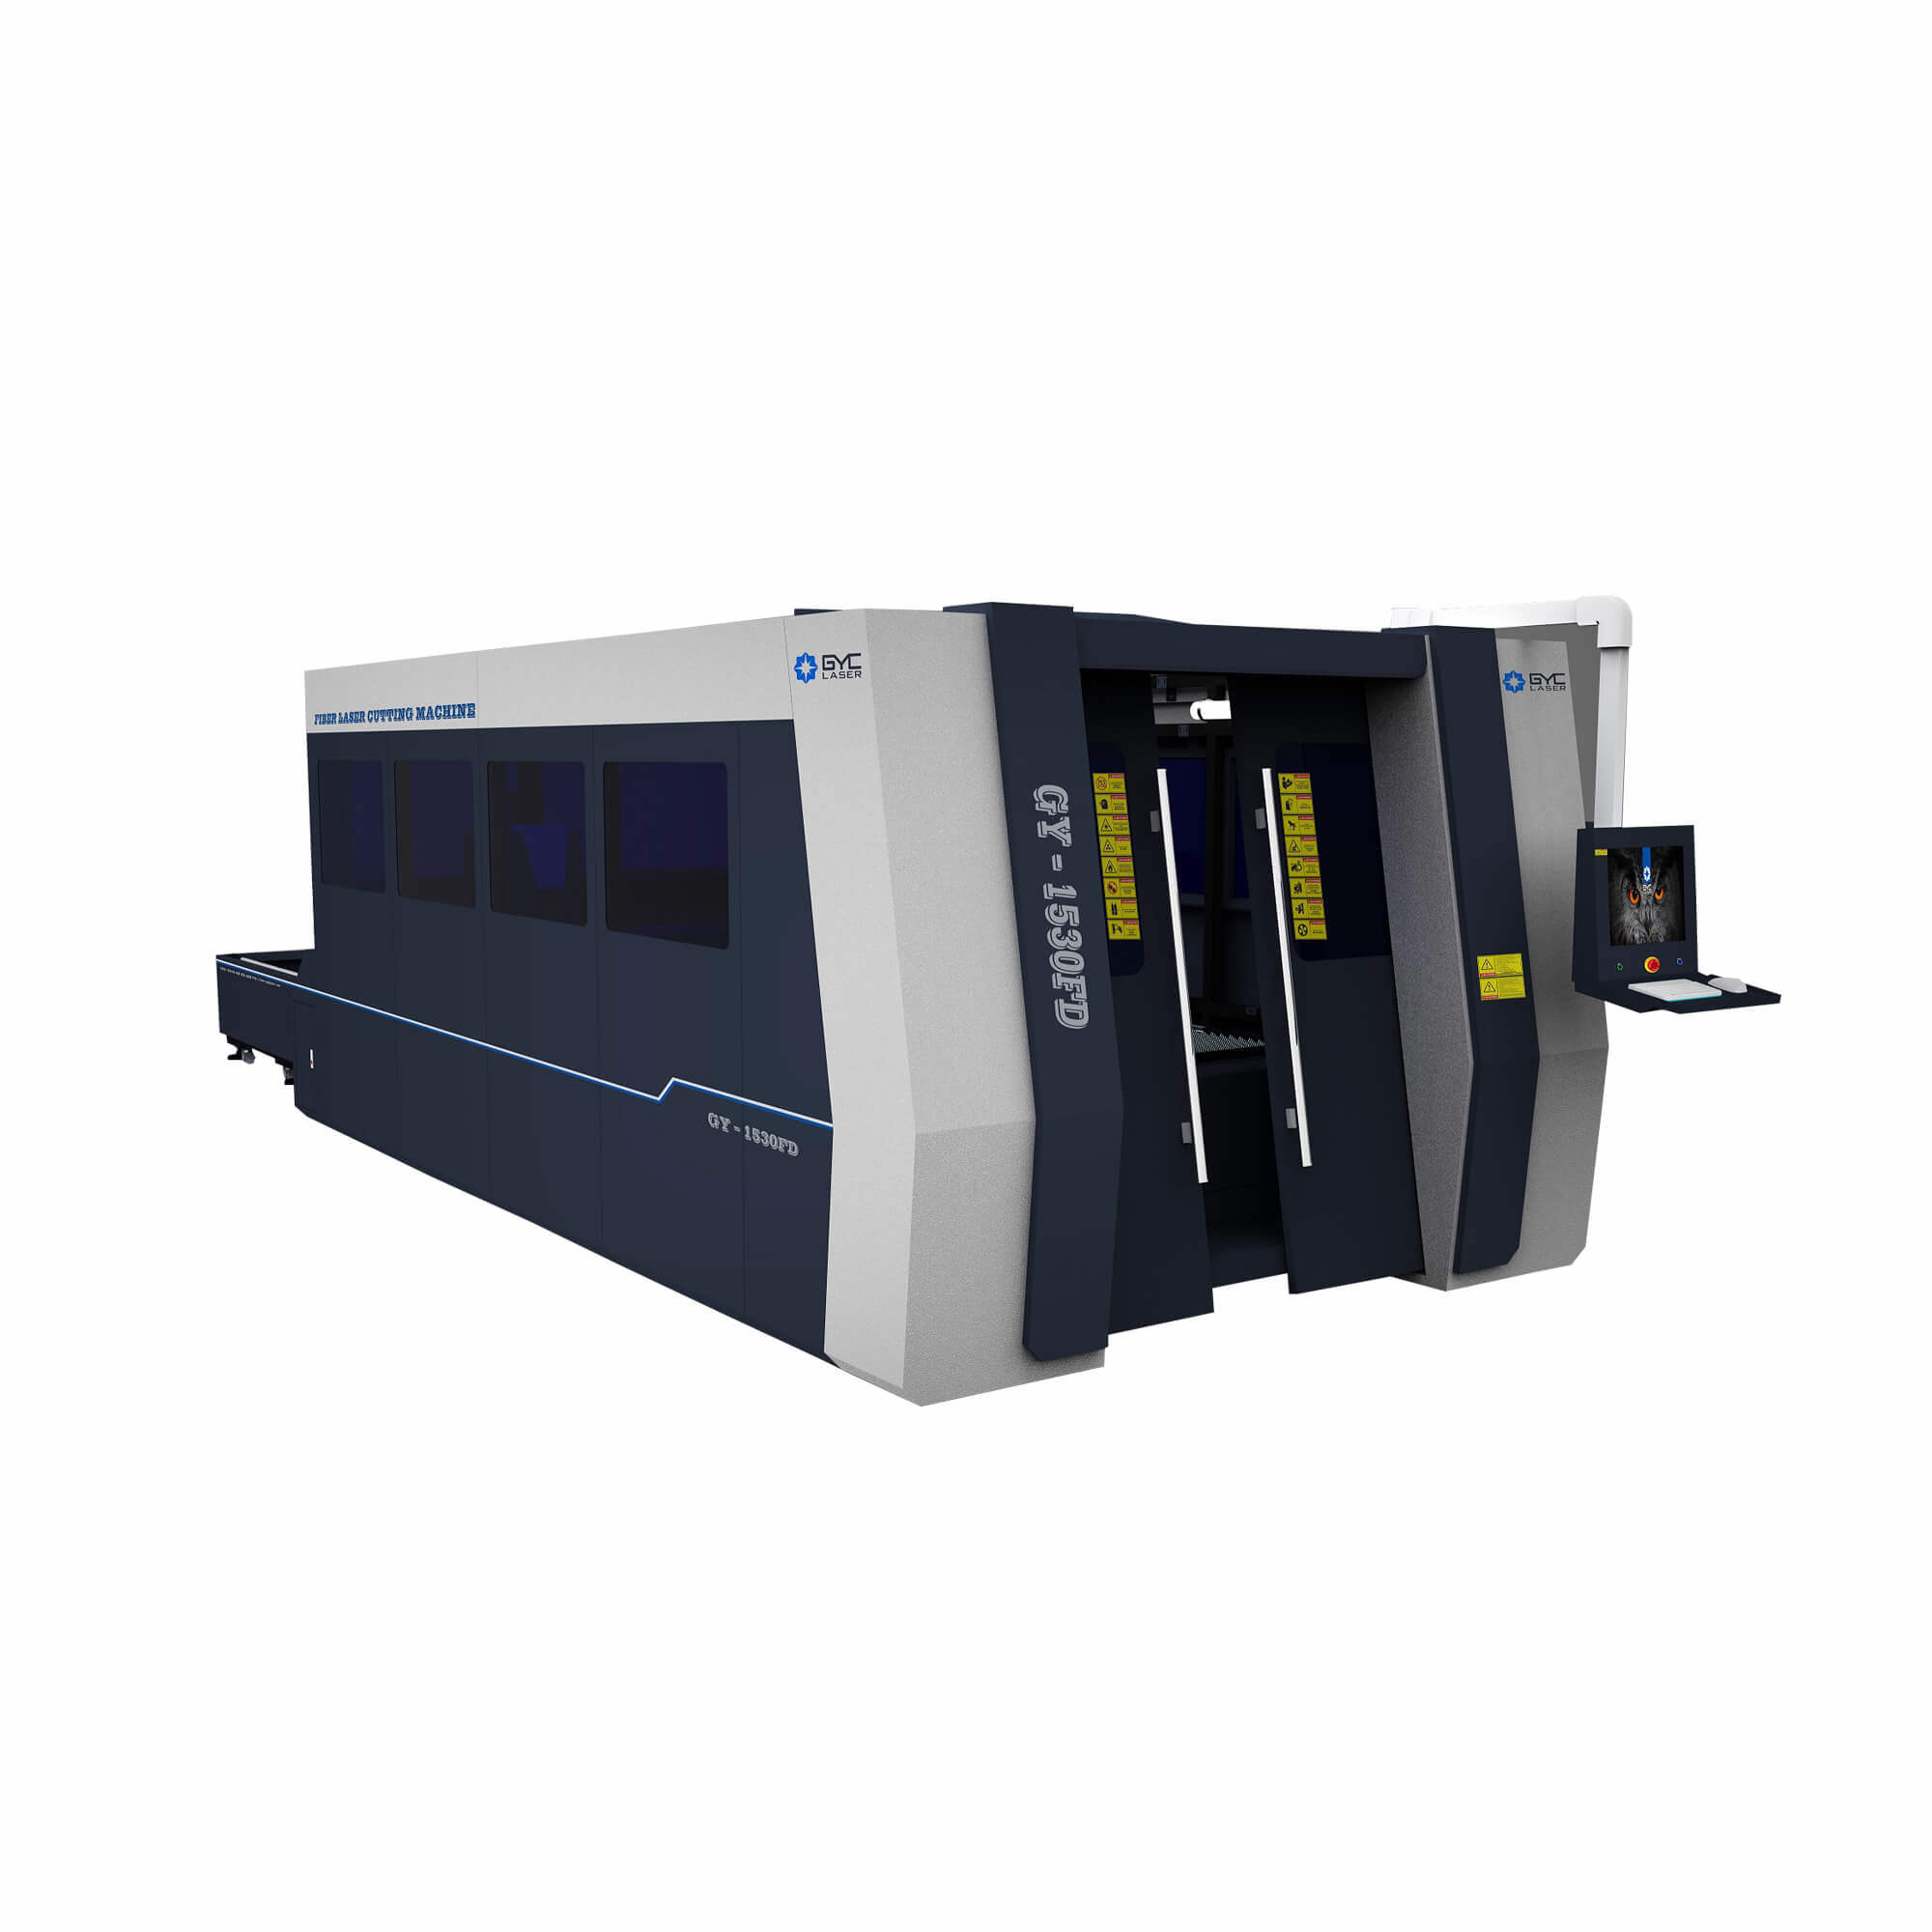 Gy-1530fd Fiber Laser Stainless Steel Metal Cutting Technology Machine pictures & photos